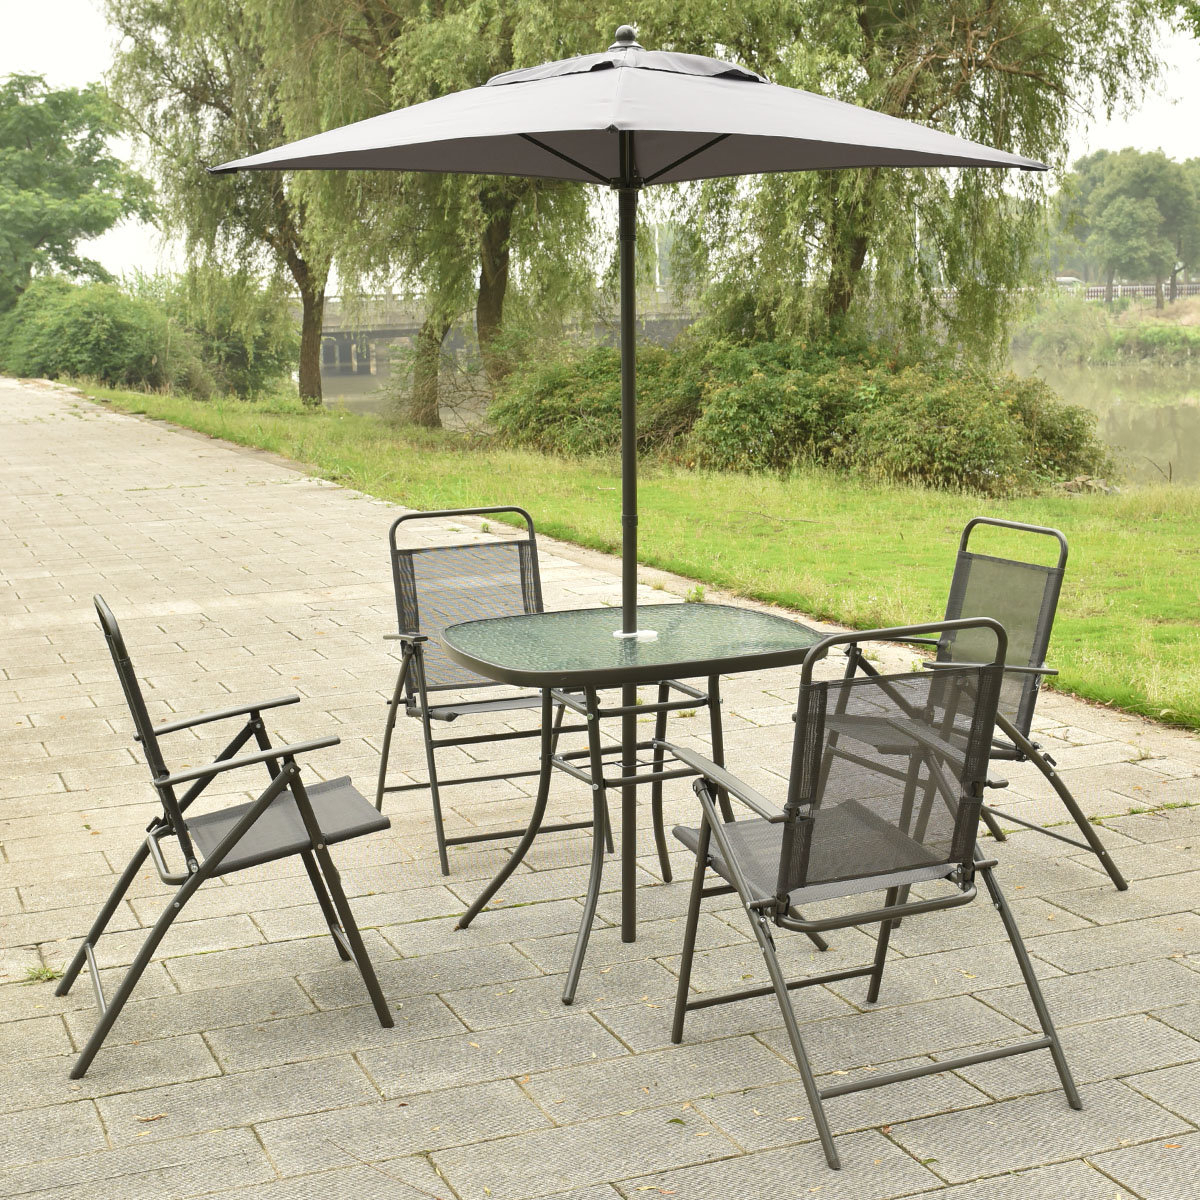 Most Current Cannock Market Umbrellas With Regard To Details About Ebern Designs Cannock 6 Piece Dining Set With Umbrella (View 5 of 20)